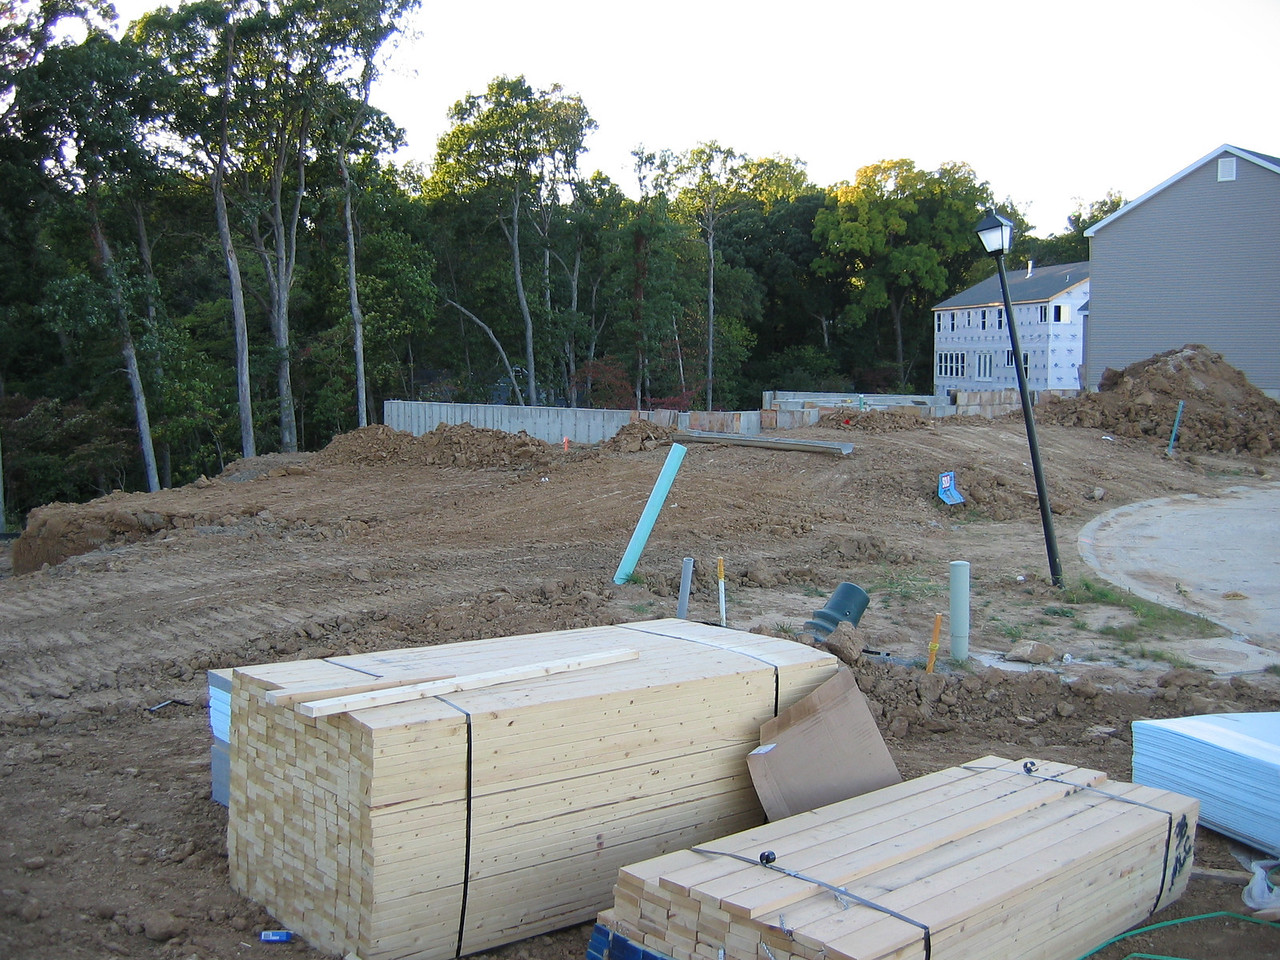 FrontView of the Foundation from the left September 28